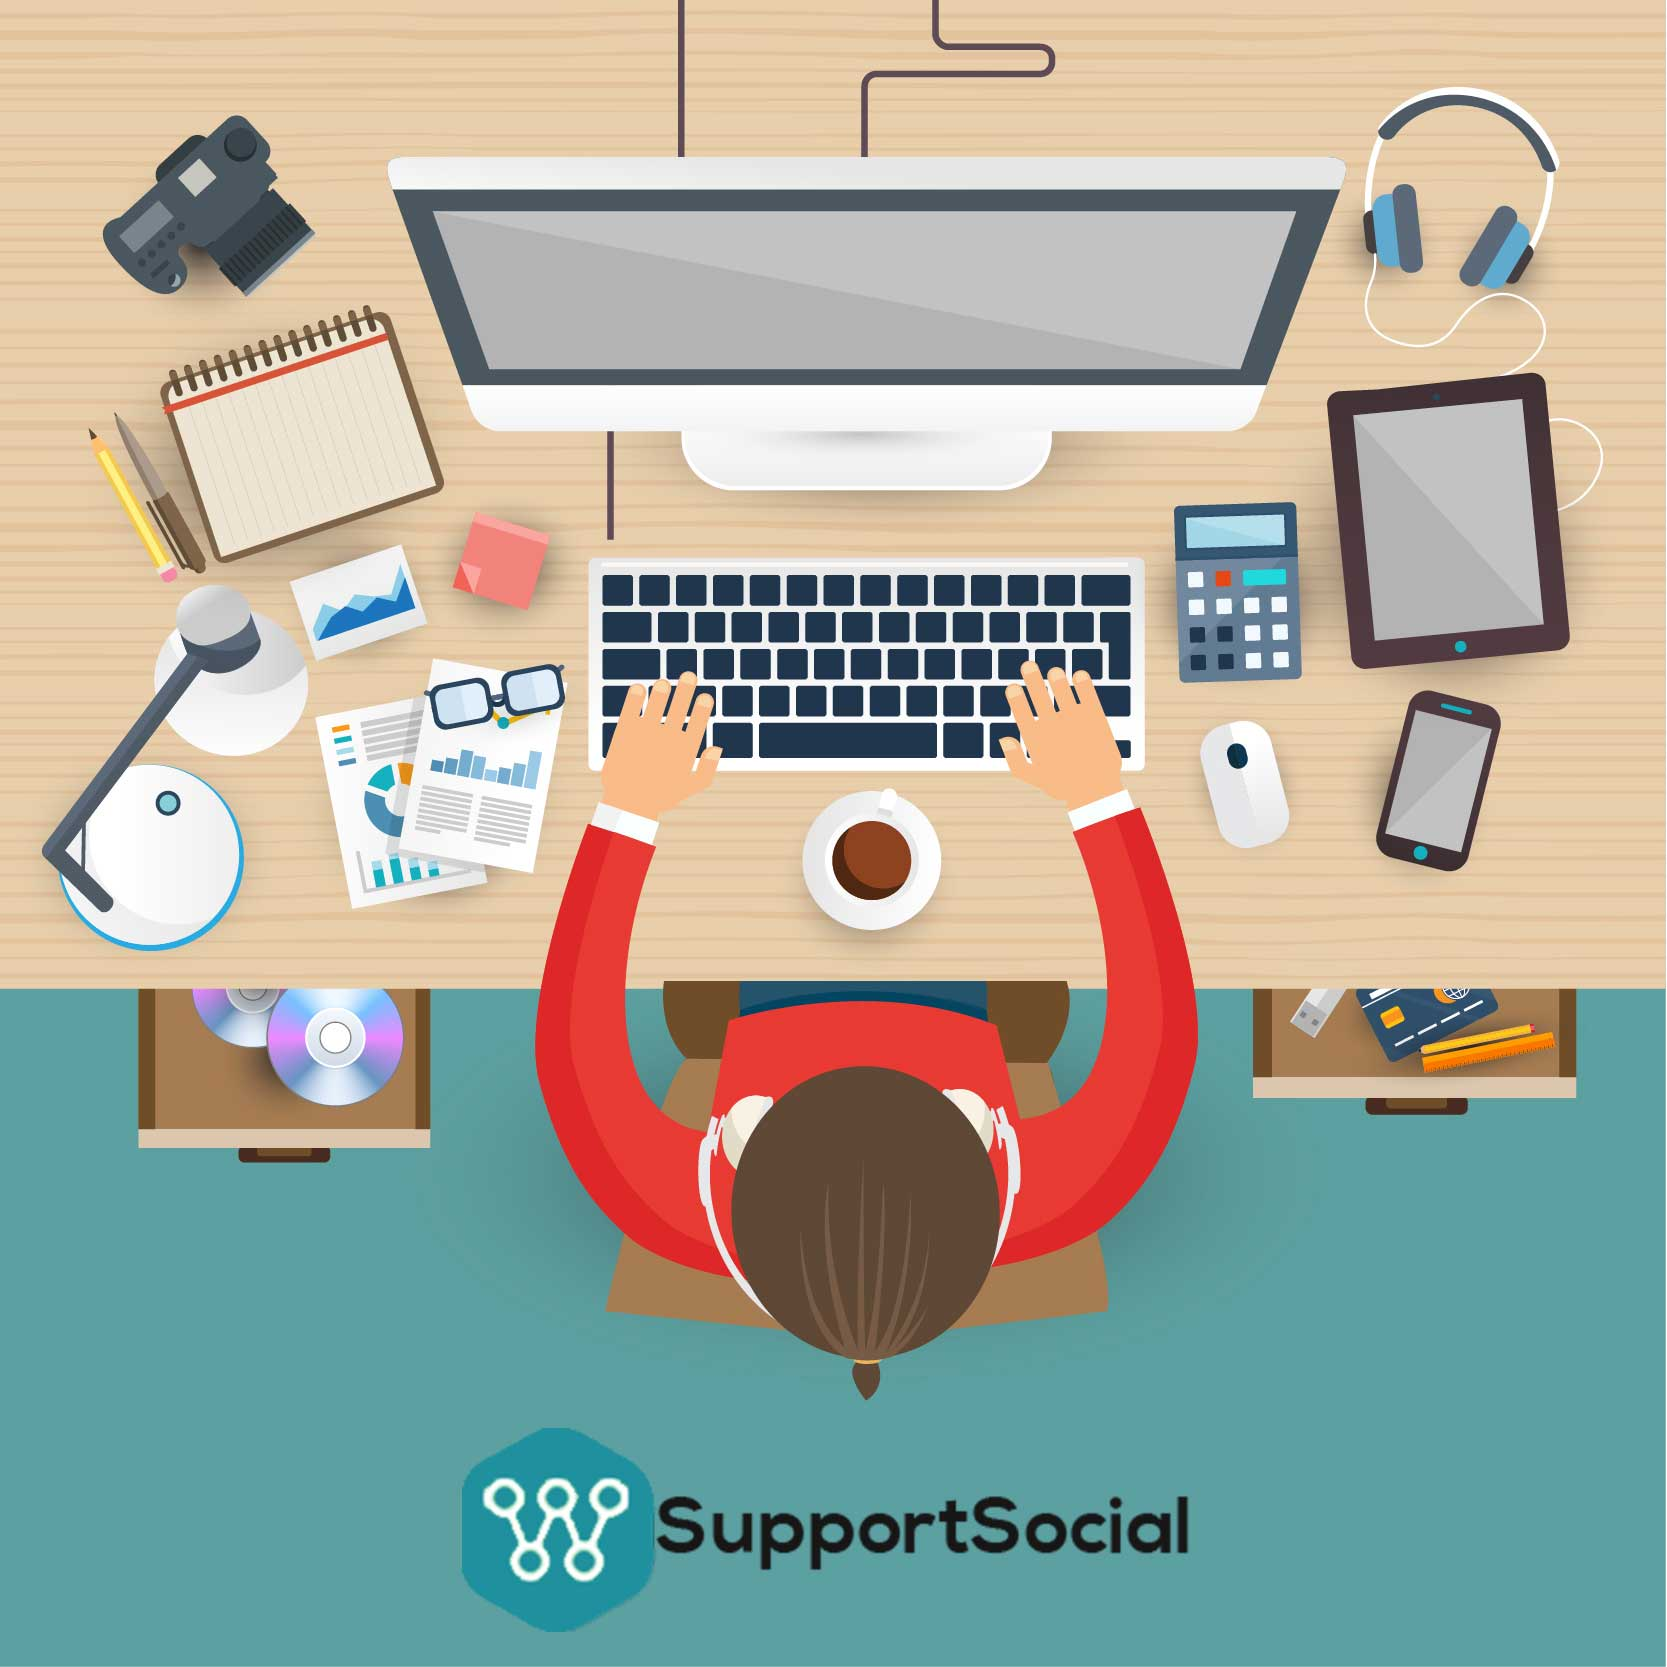 Support Social for Small Businesses